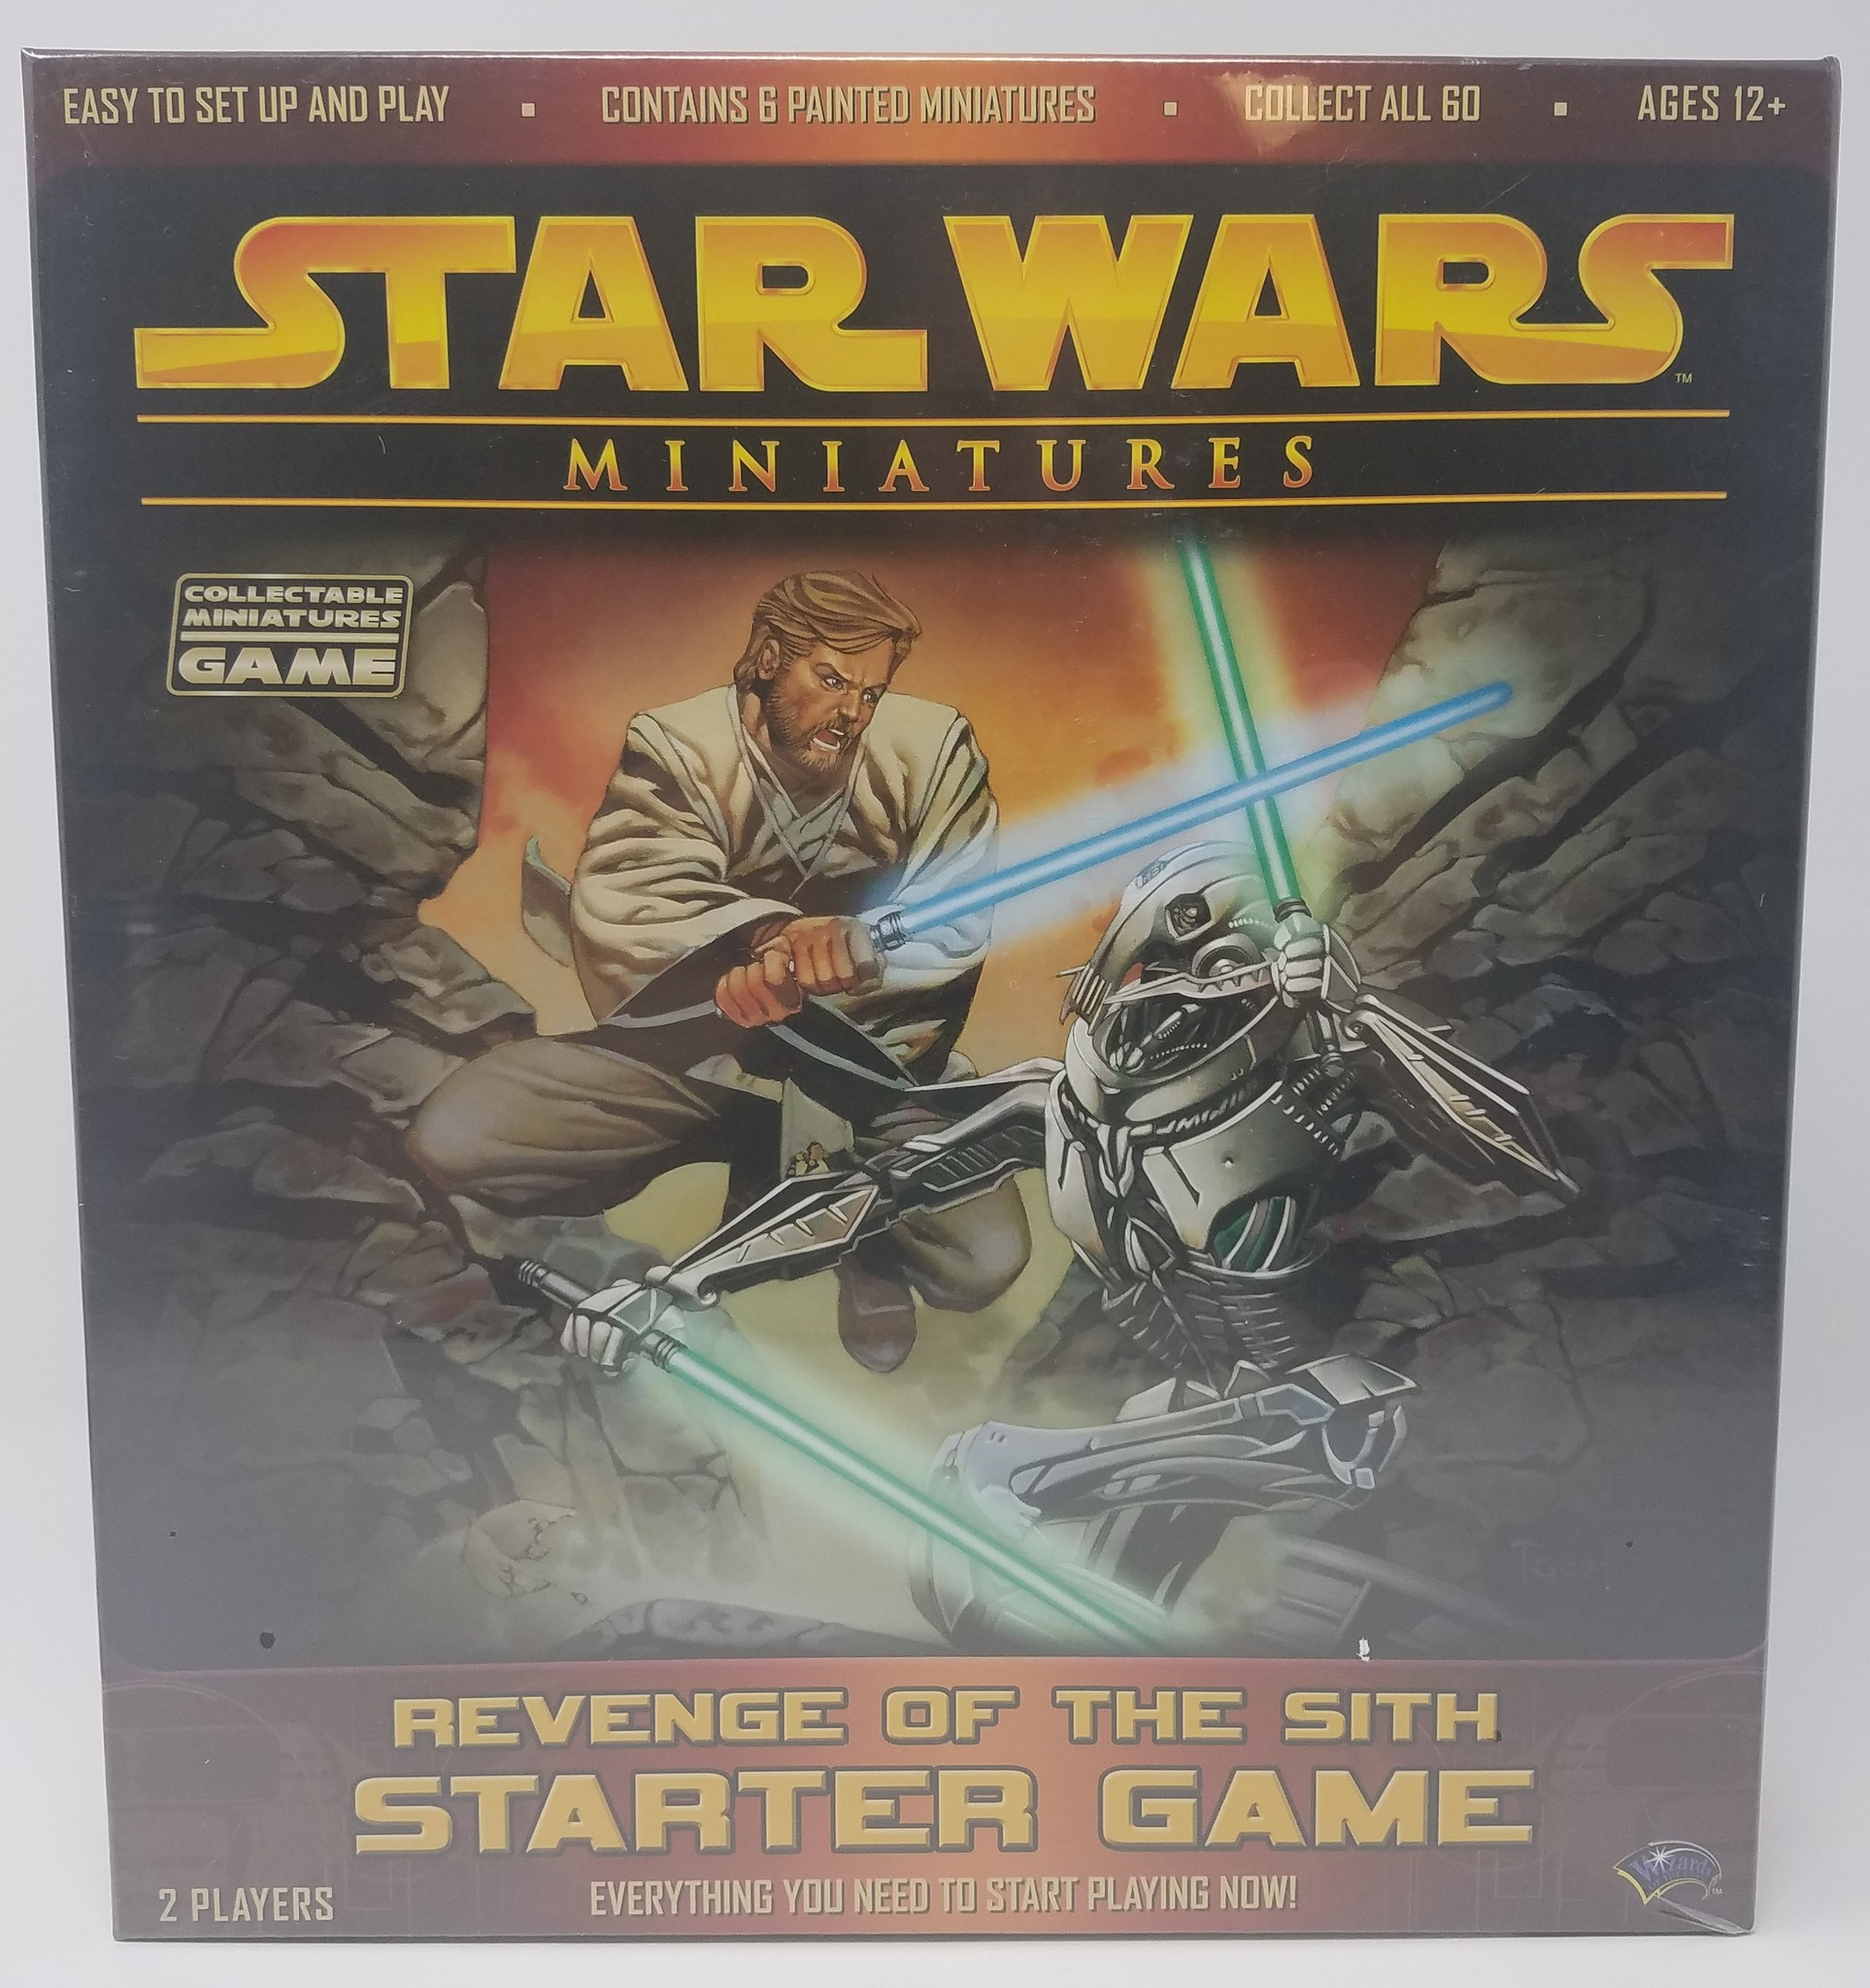 Star Wars Miniatures: Revenge of the Sith Starter Game